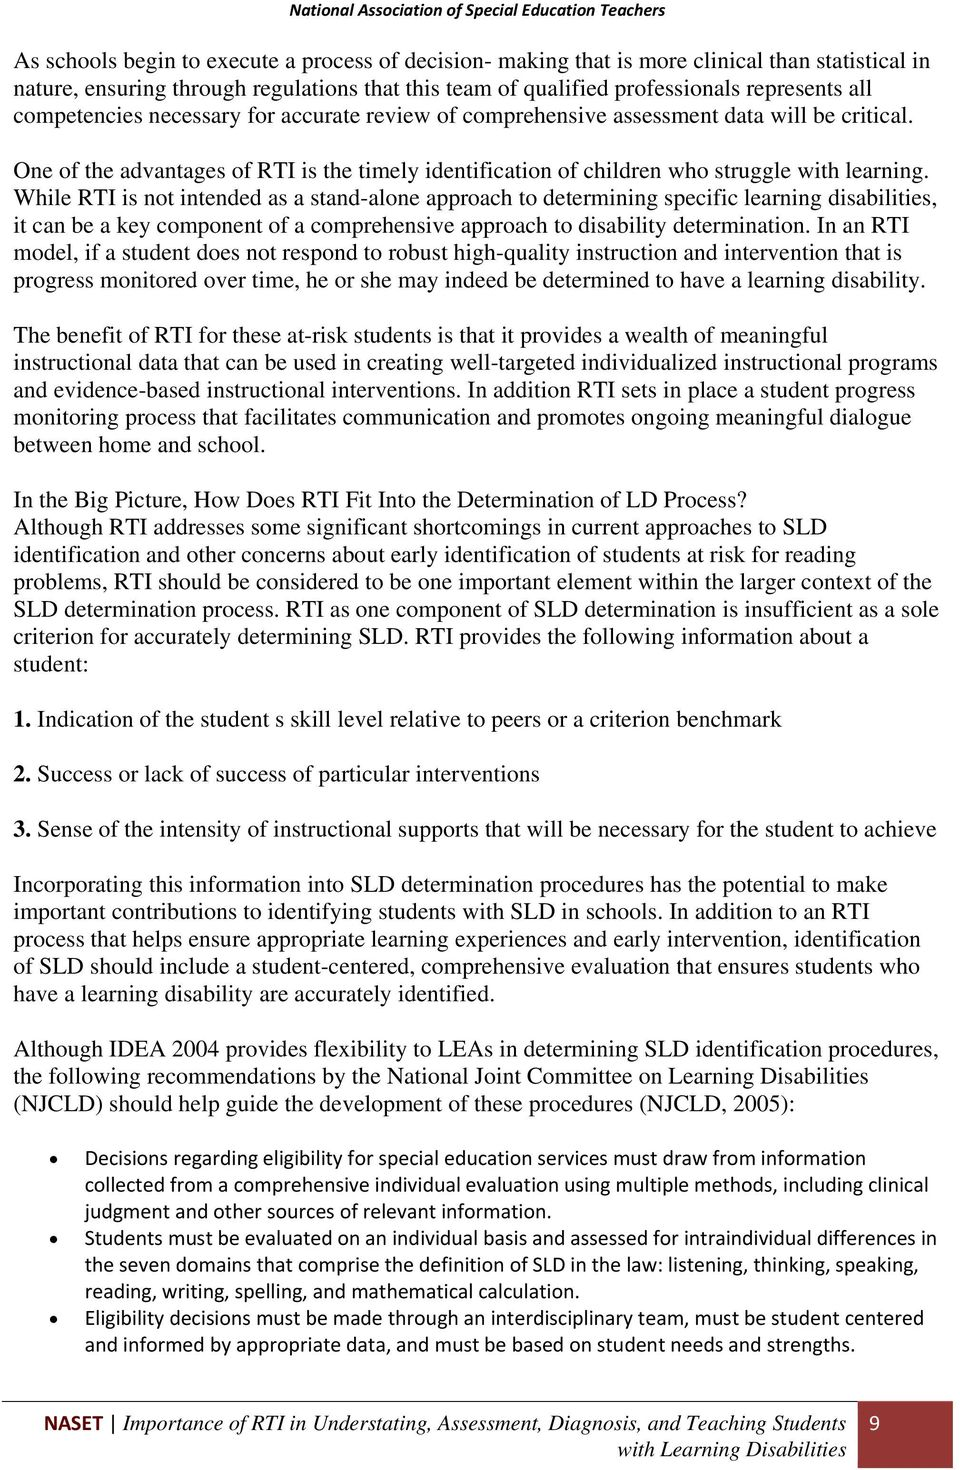 While RTI is not intended as a stand-alone approach to determining specific  learning disabilities